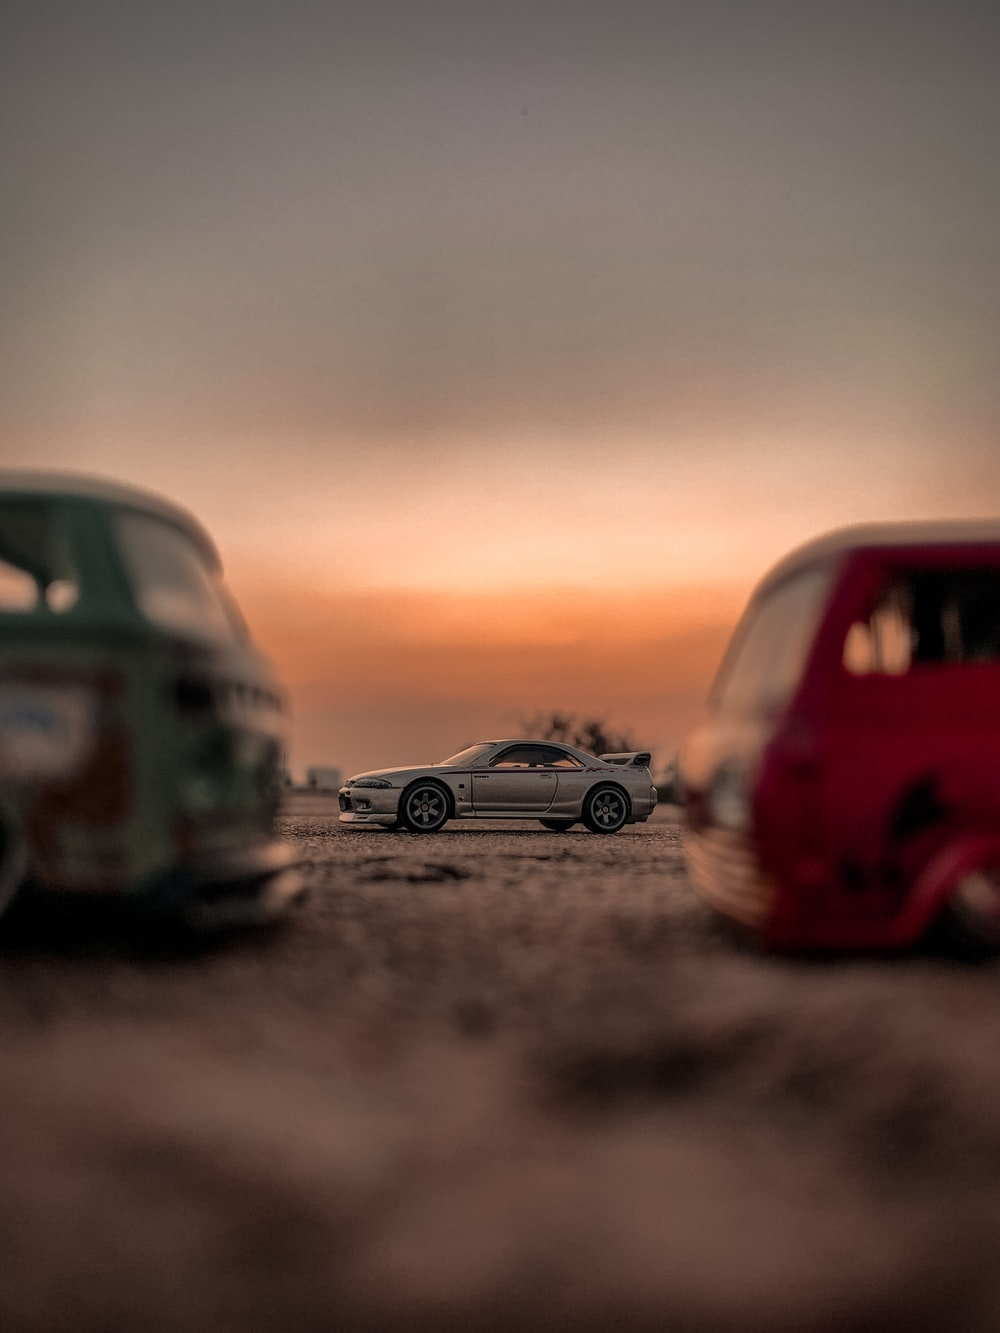 red and black volkswagen beetle on road during sunset